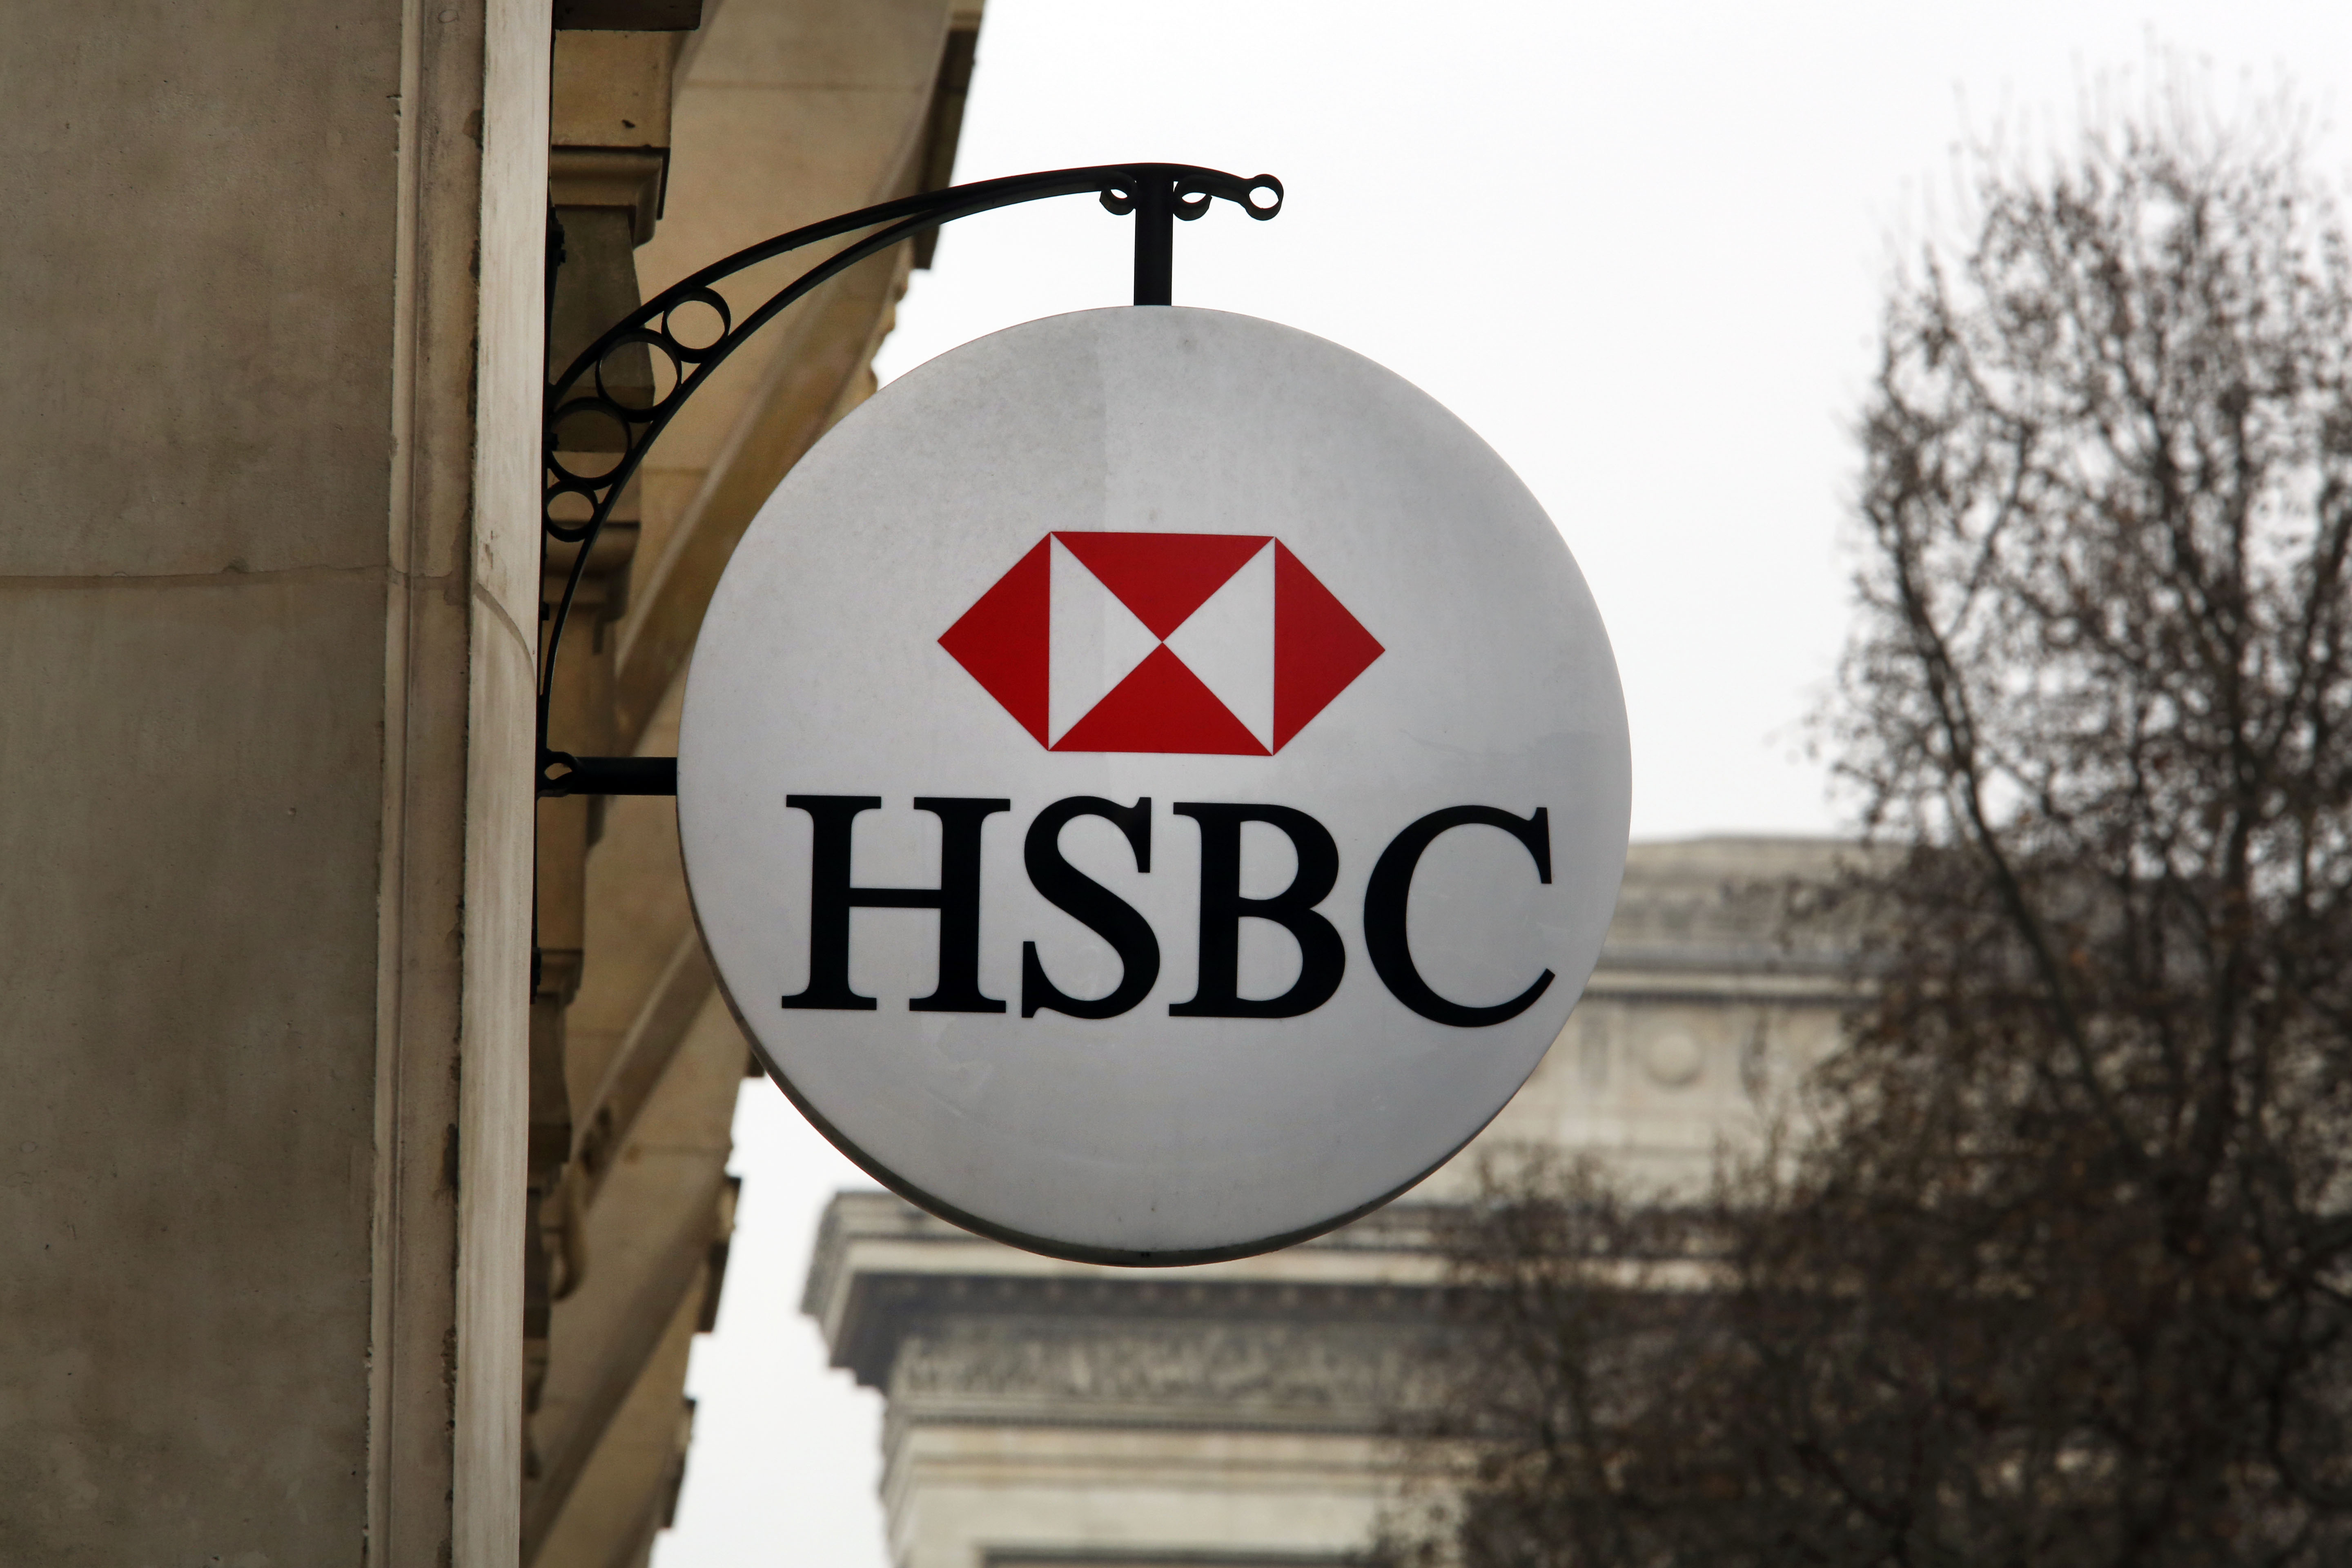 The HSBC logo on the facade of HSBC France headquarters in Paris on Feb. 9, 2015.